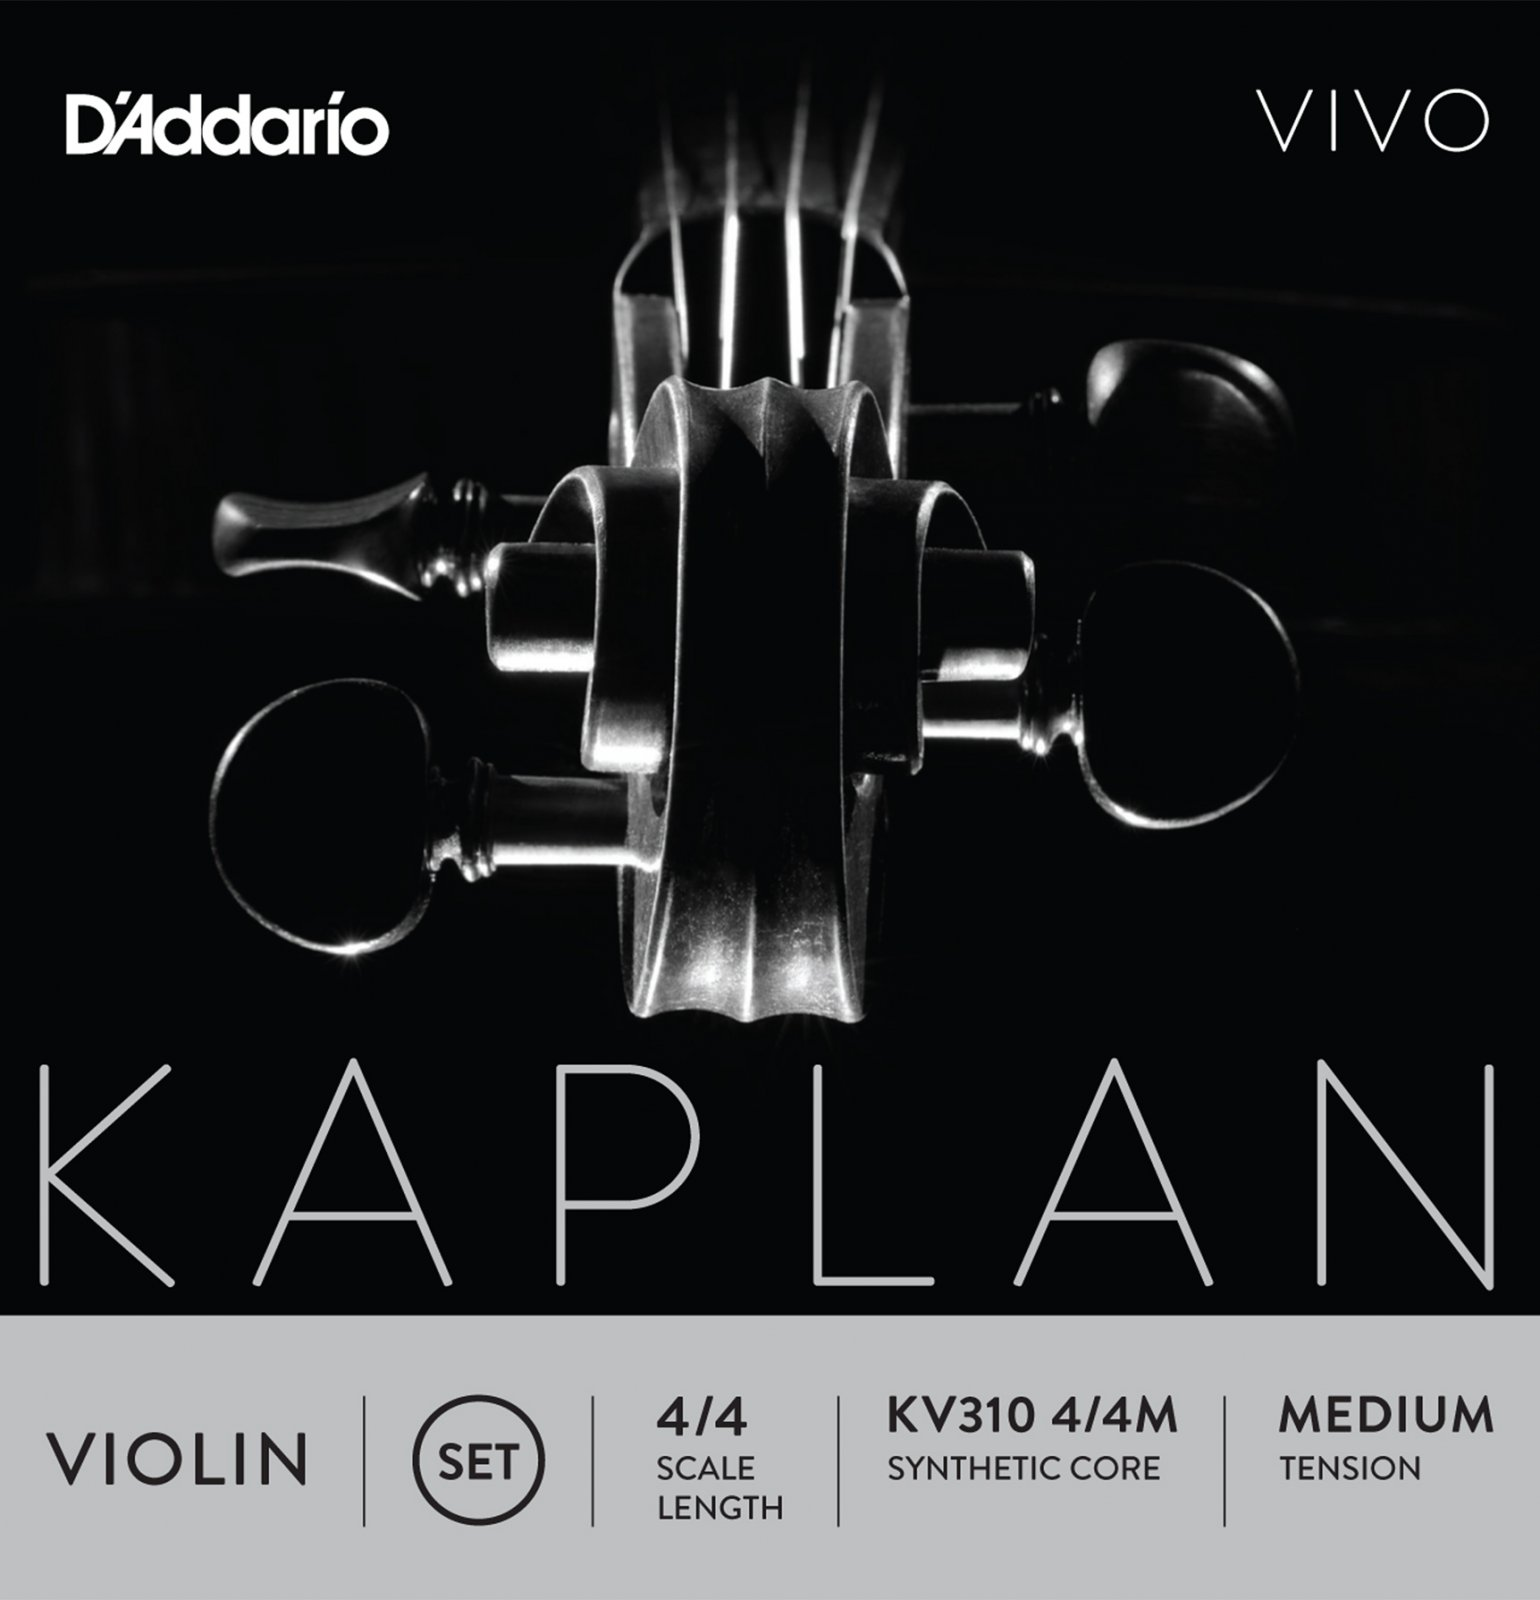 D'Addario KV310 4/4M Kaplan Vivo Violin String Set 4/4 Scale Medium Tension